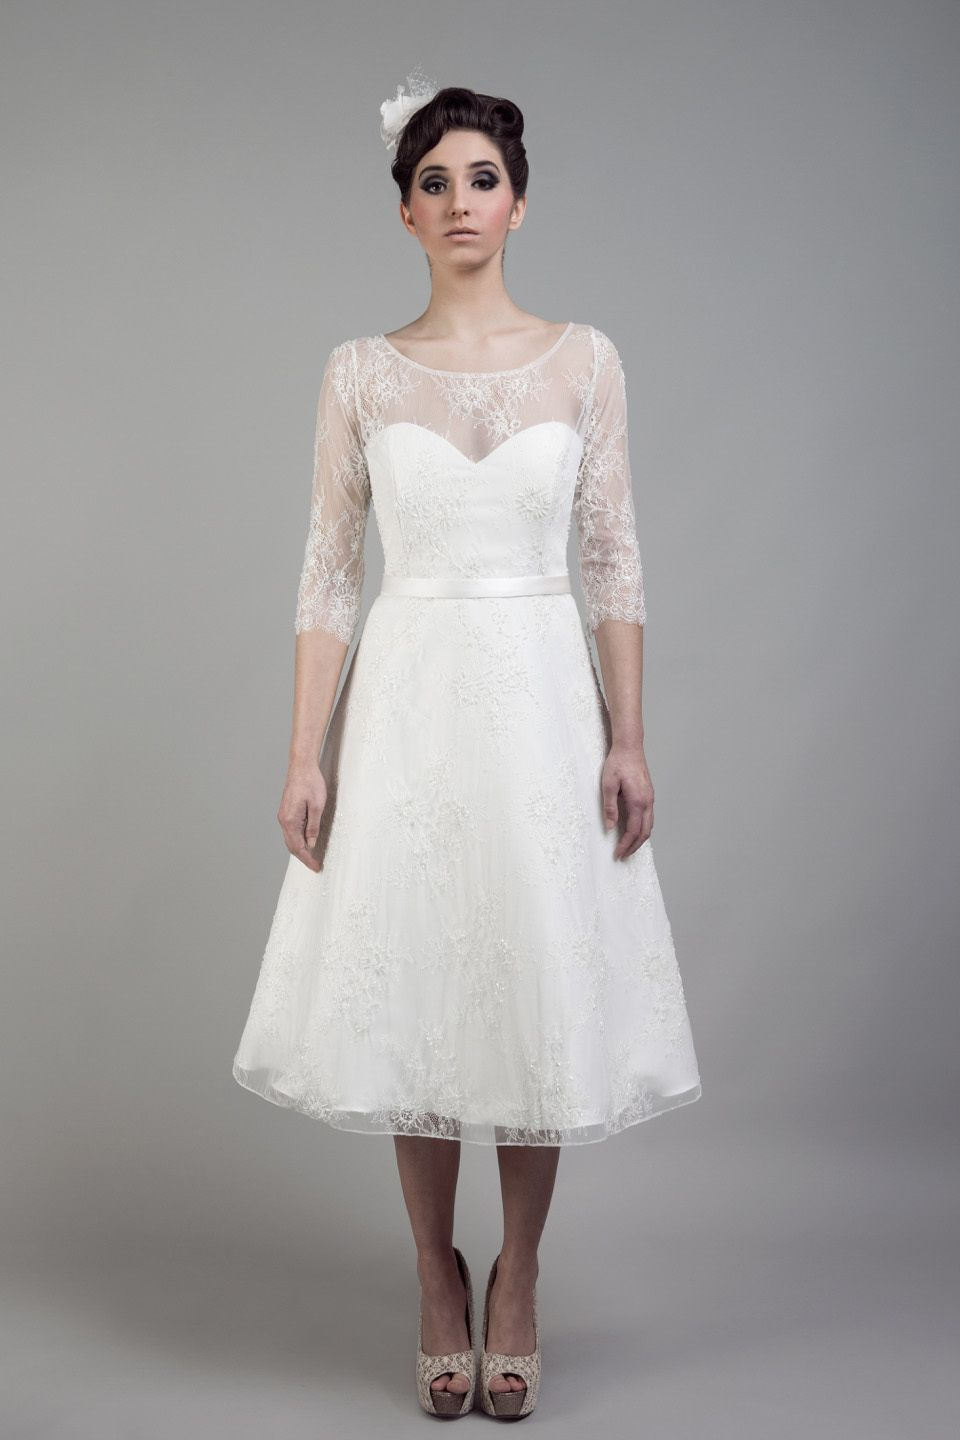 Wedding Dress For Short People How To Dress For A Wedding Check More At Http Svesty Short Lace Wedding Dress Short Wedding Dress Beaded Lace Wedding Dress [ 1440 x 960 Pixel ]